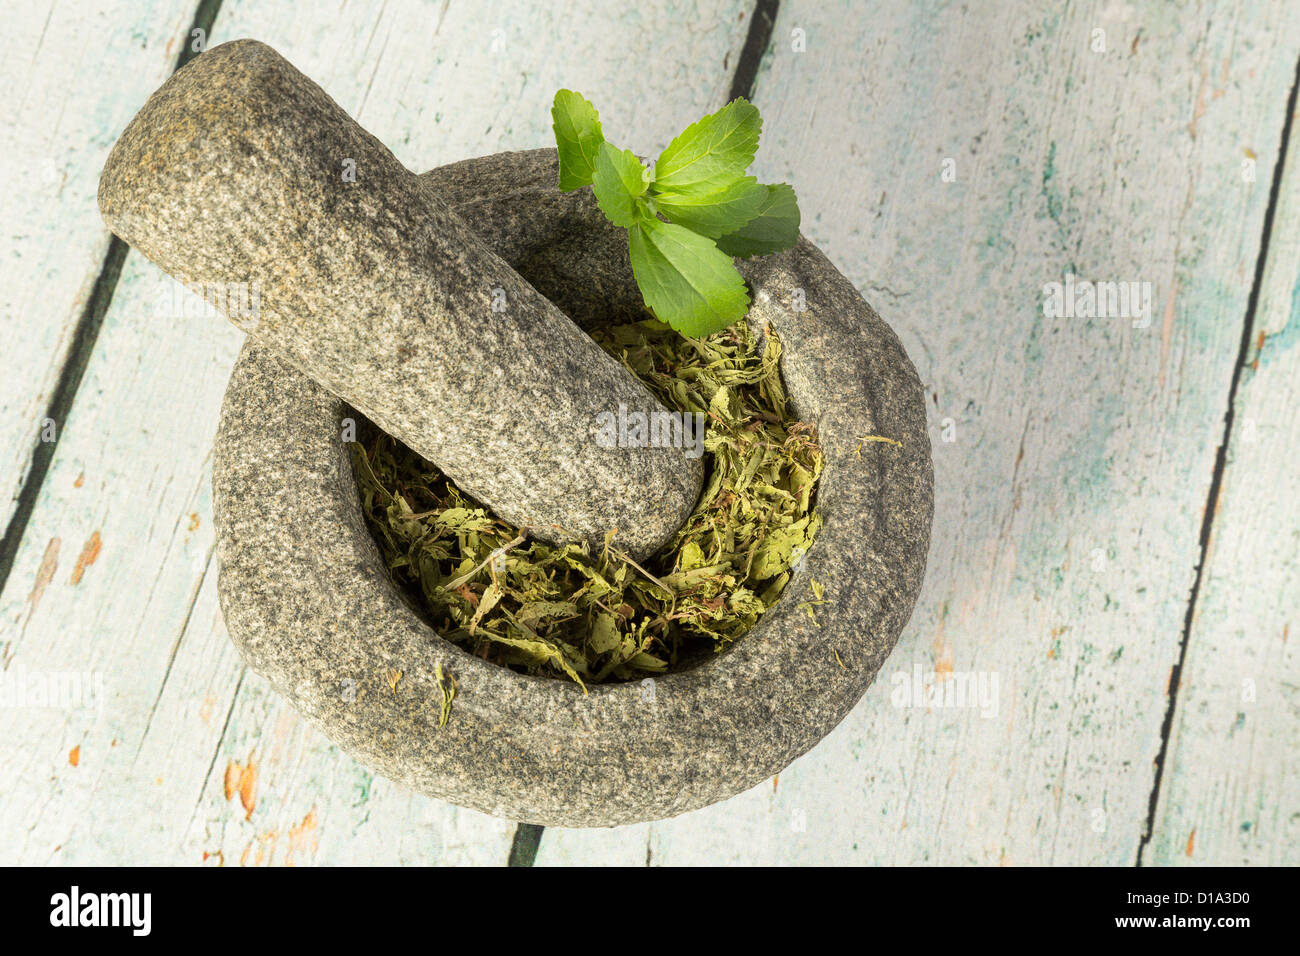 Healthy sugar substitute dried stevia in mortar - Stock Image